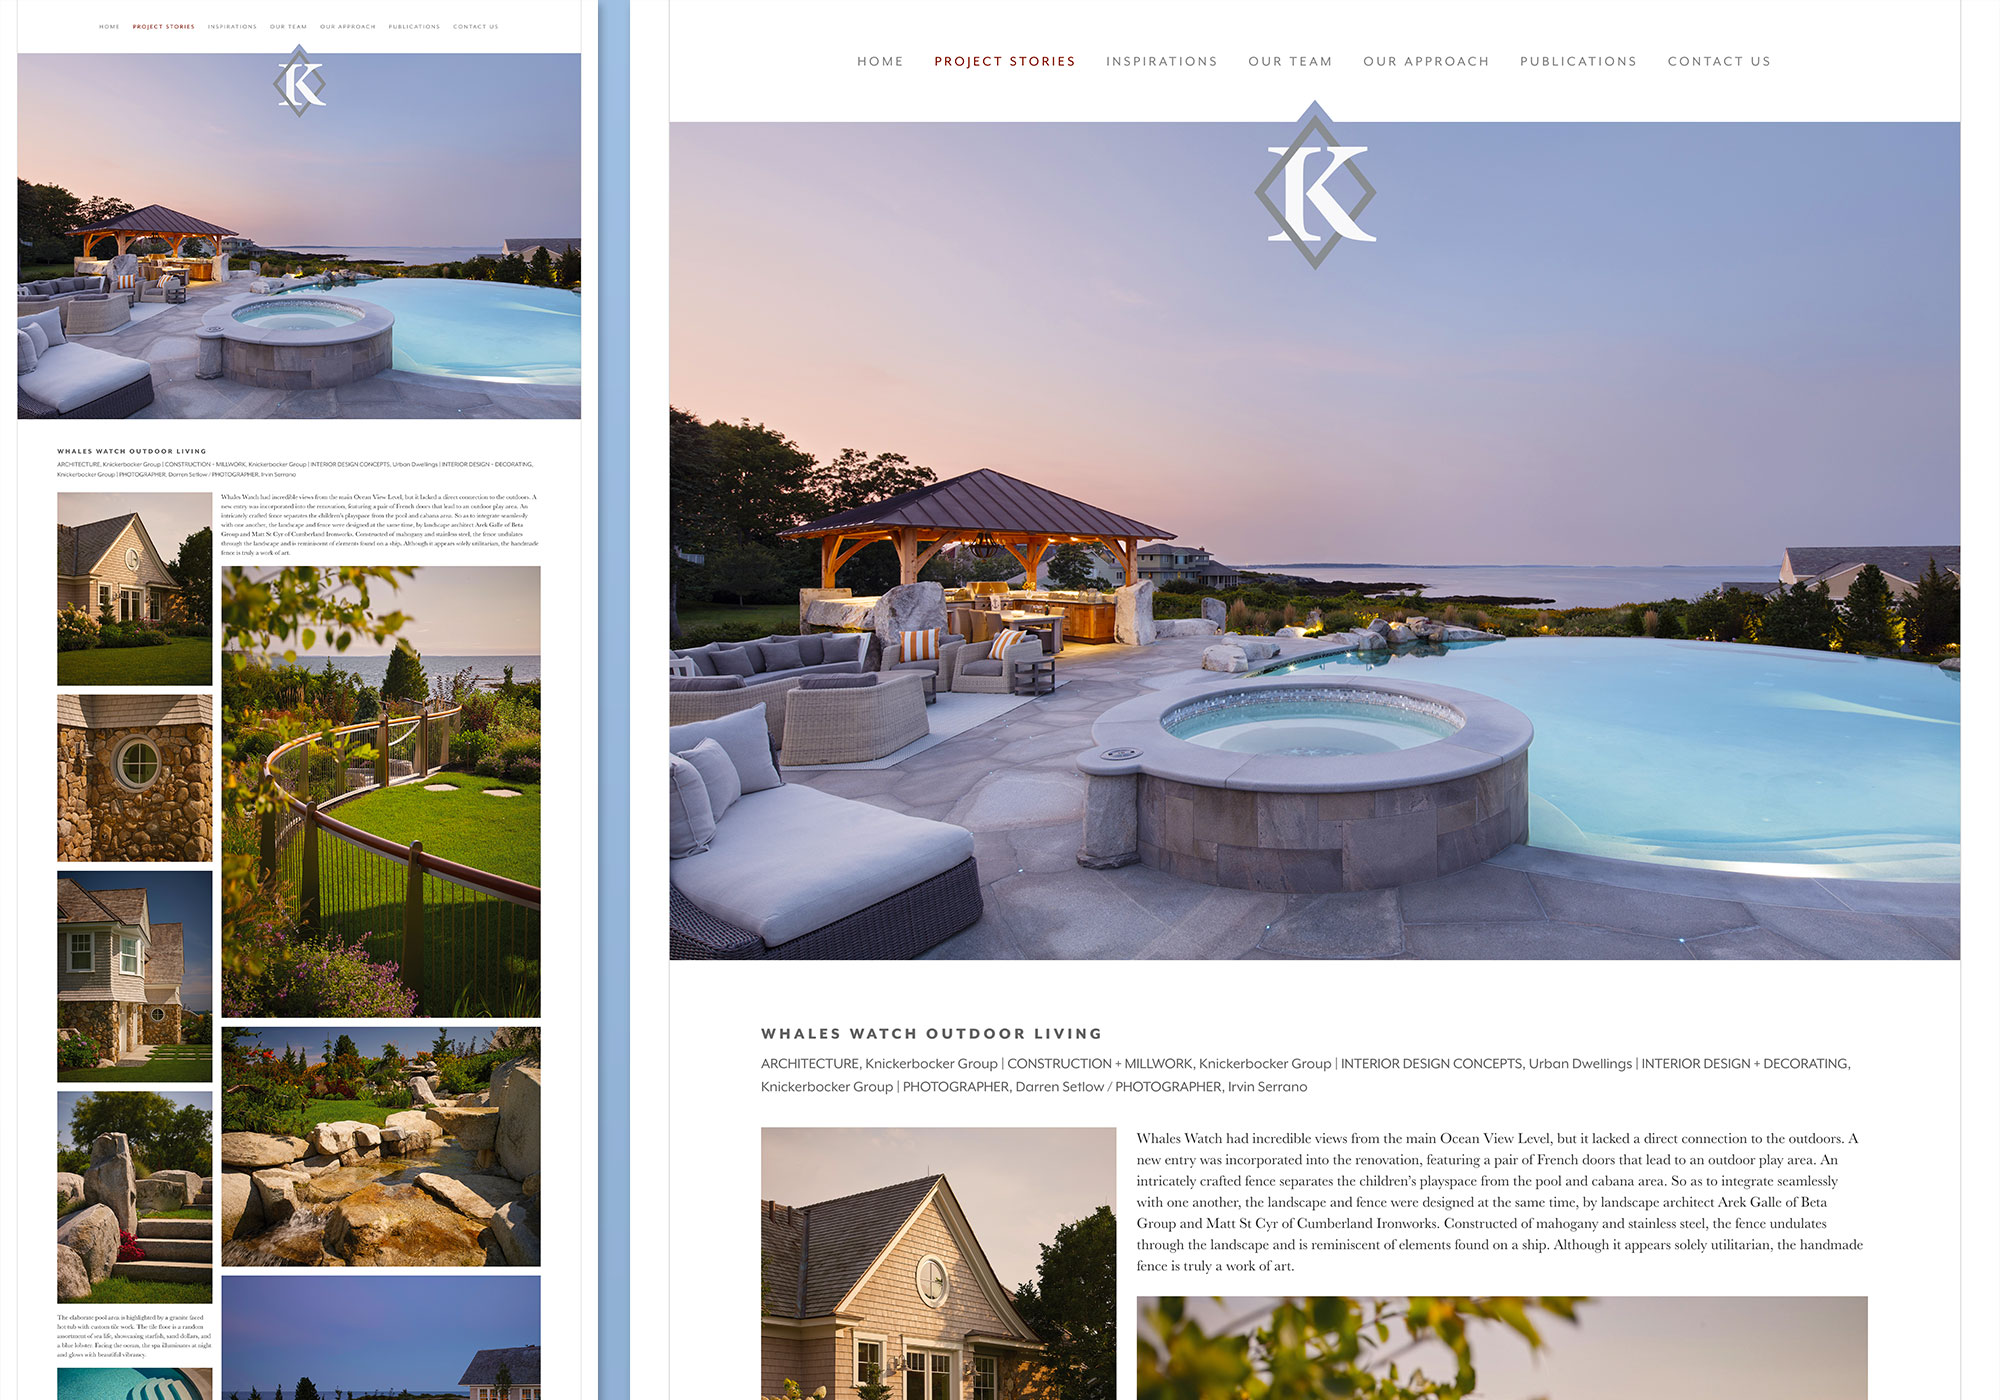 Another example of the project stories masonry style design and layout. This one features the Whales Watch Outdoor design by Knickerbocker Group. Website programming by SlickFish .